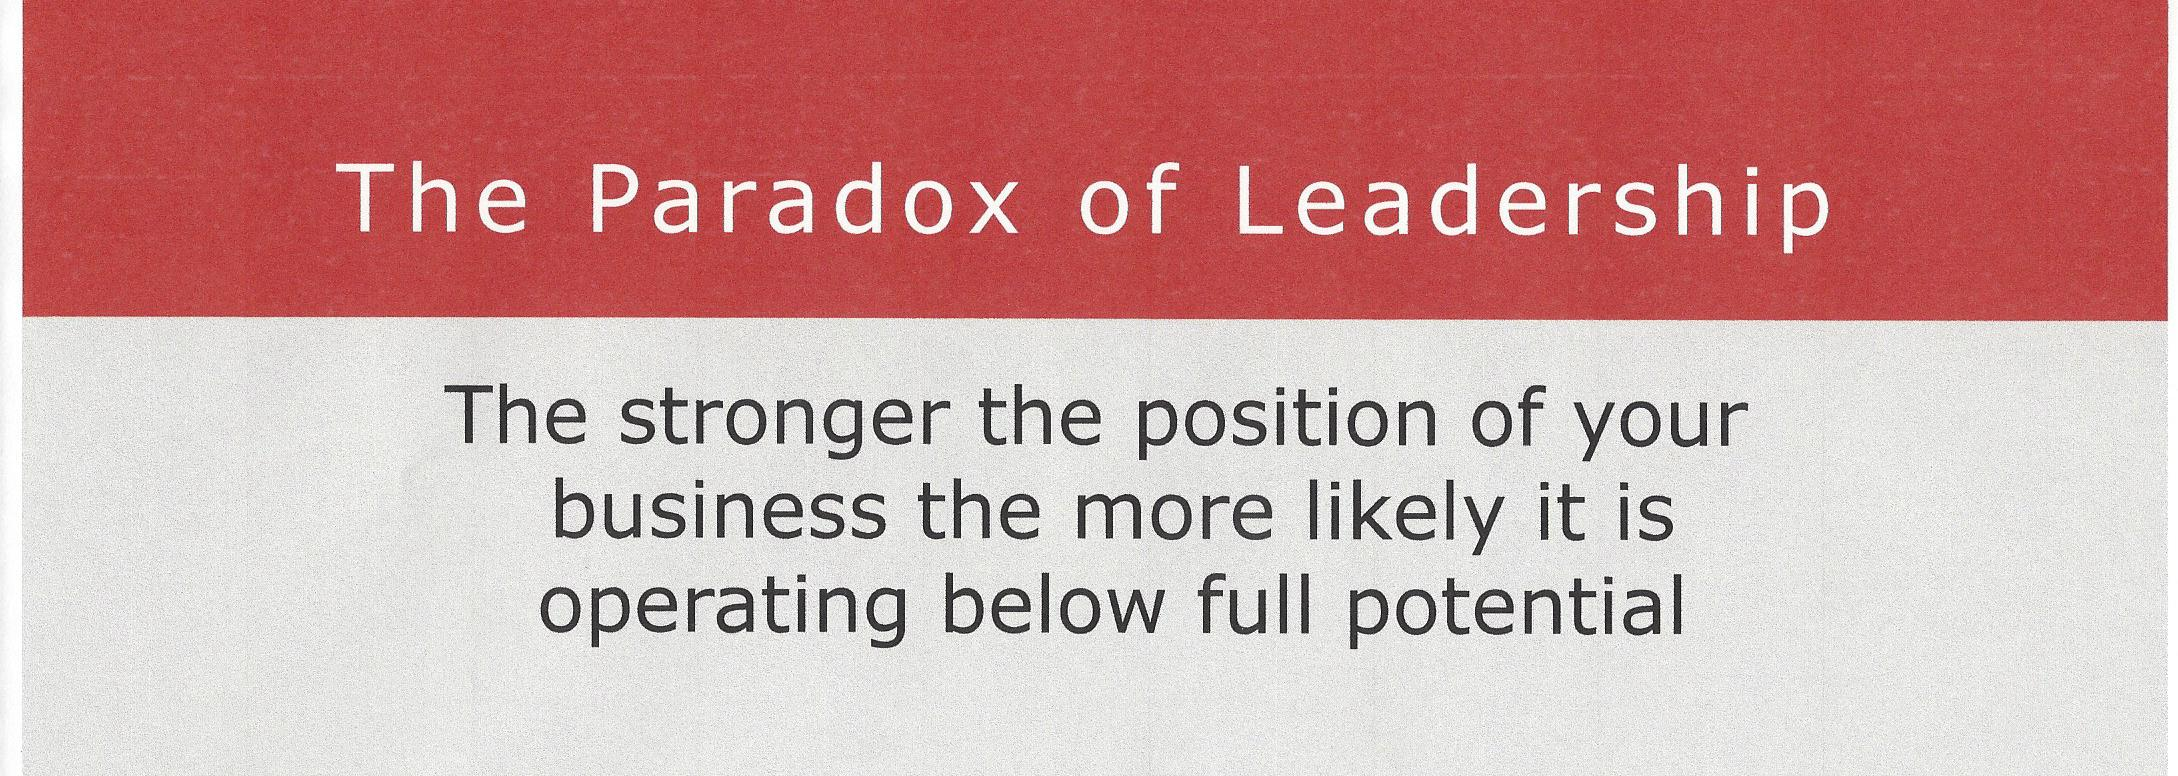 Paradox of Leadership - The stronger the position of your busin.jpg